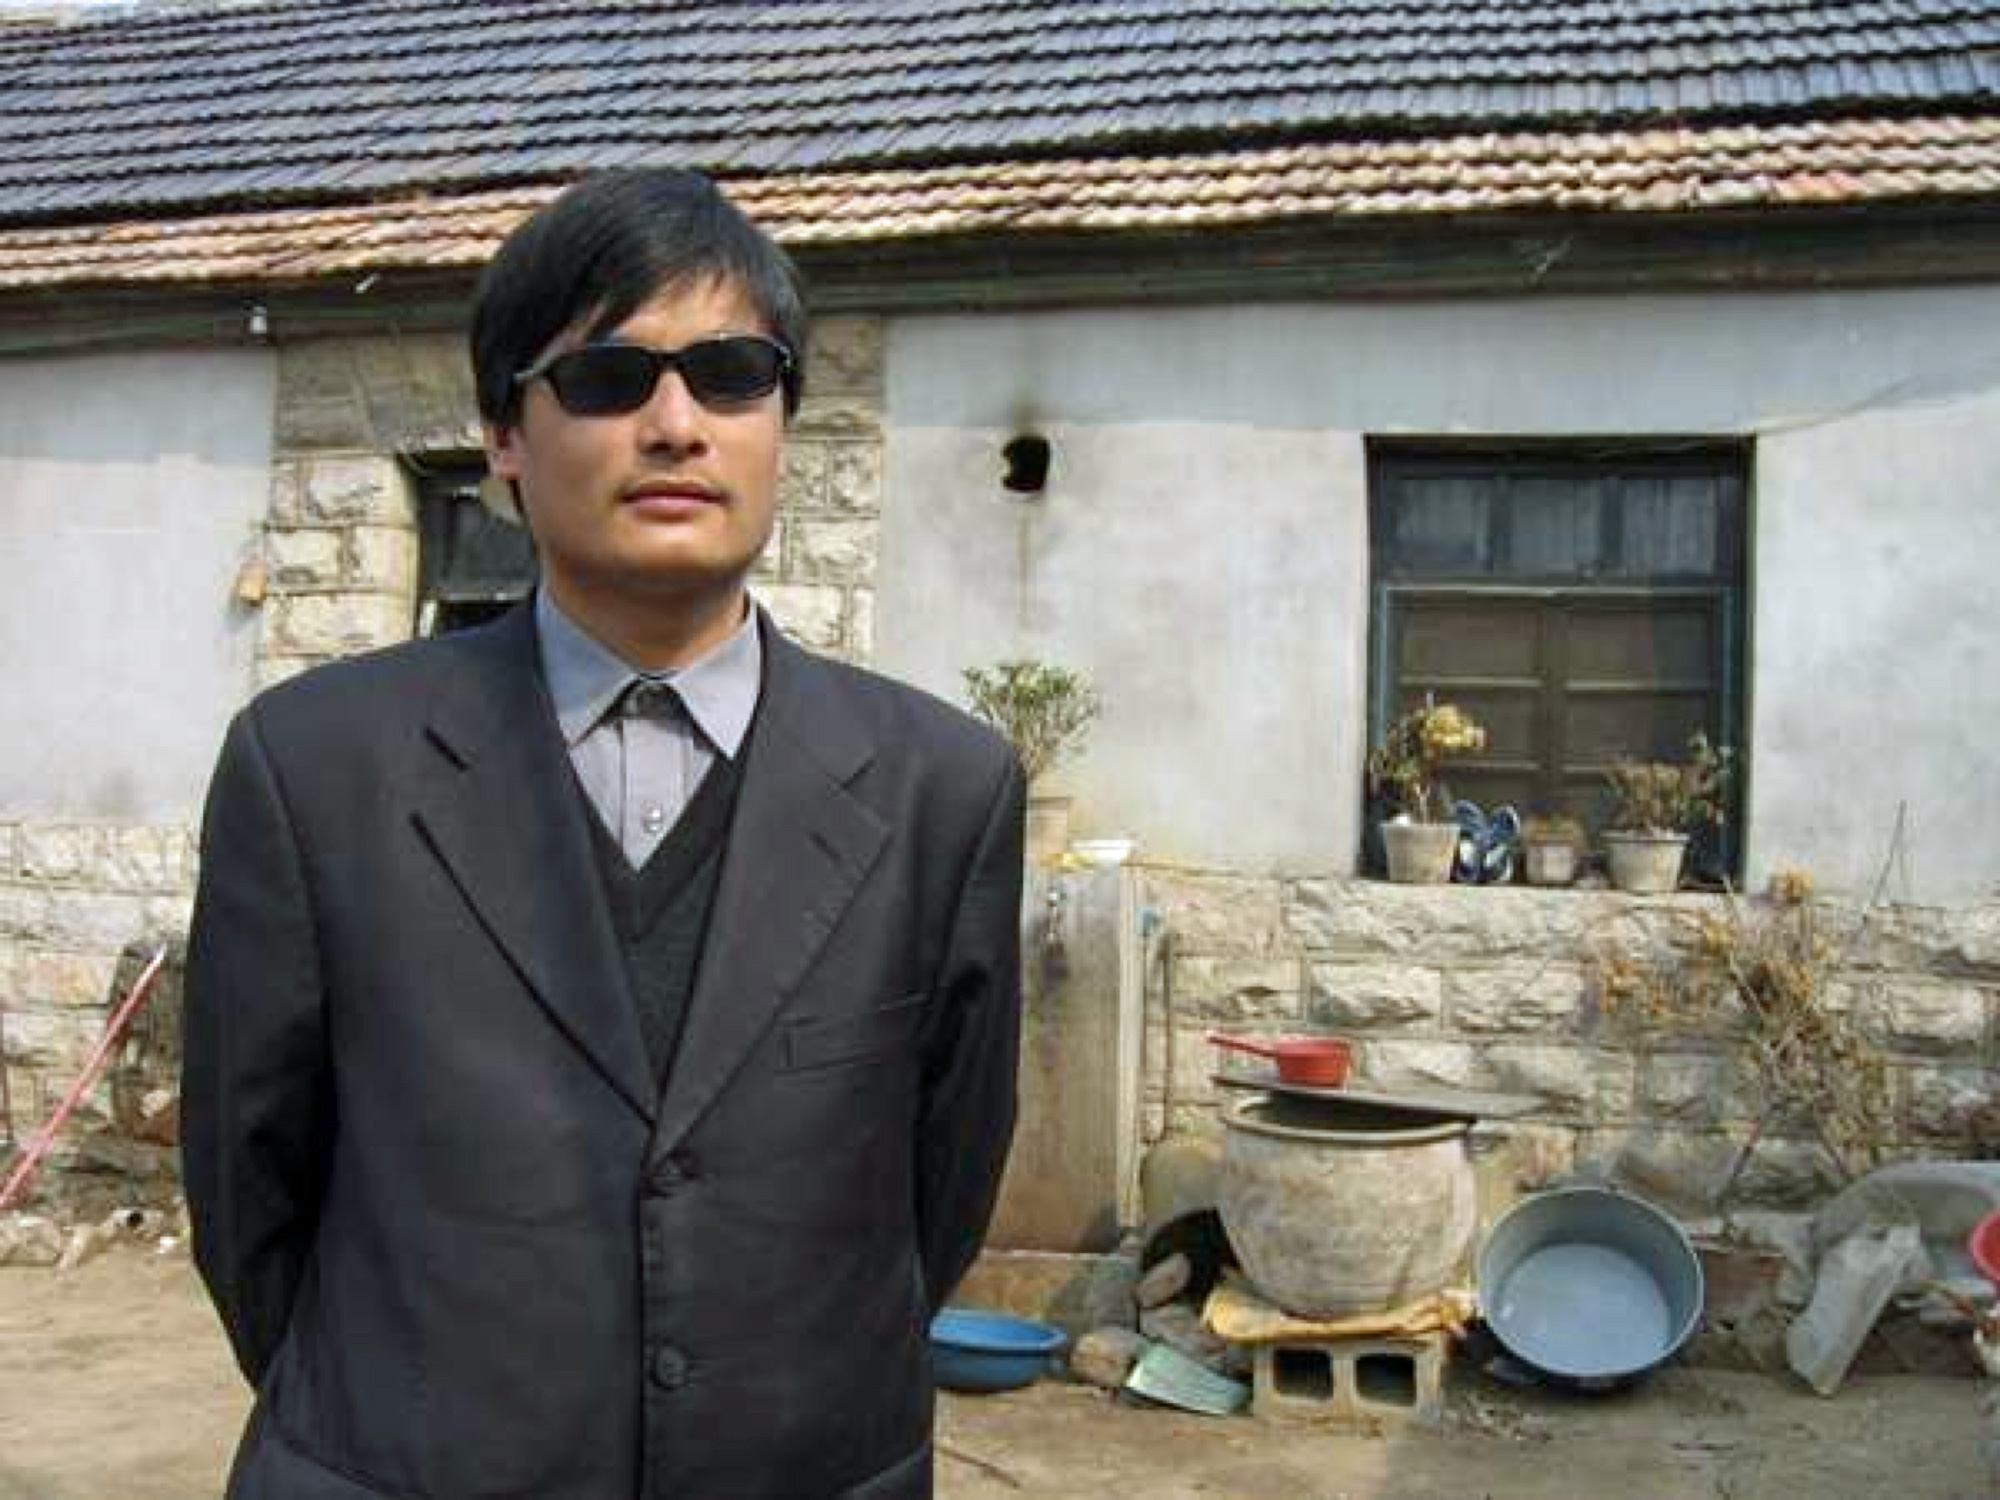 Le dissident chinois Chen Guangcheng.